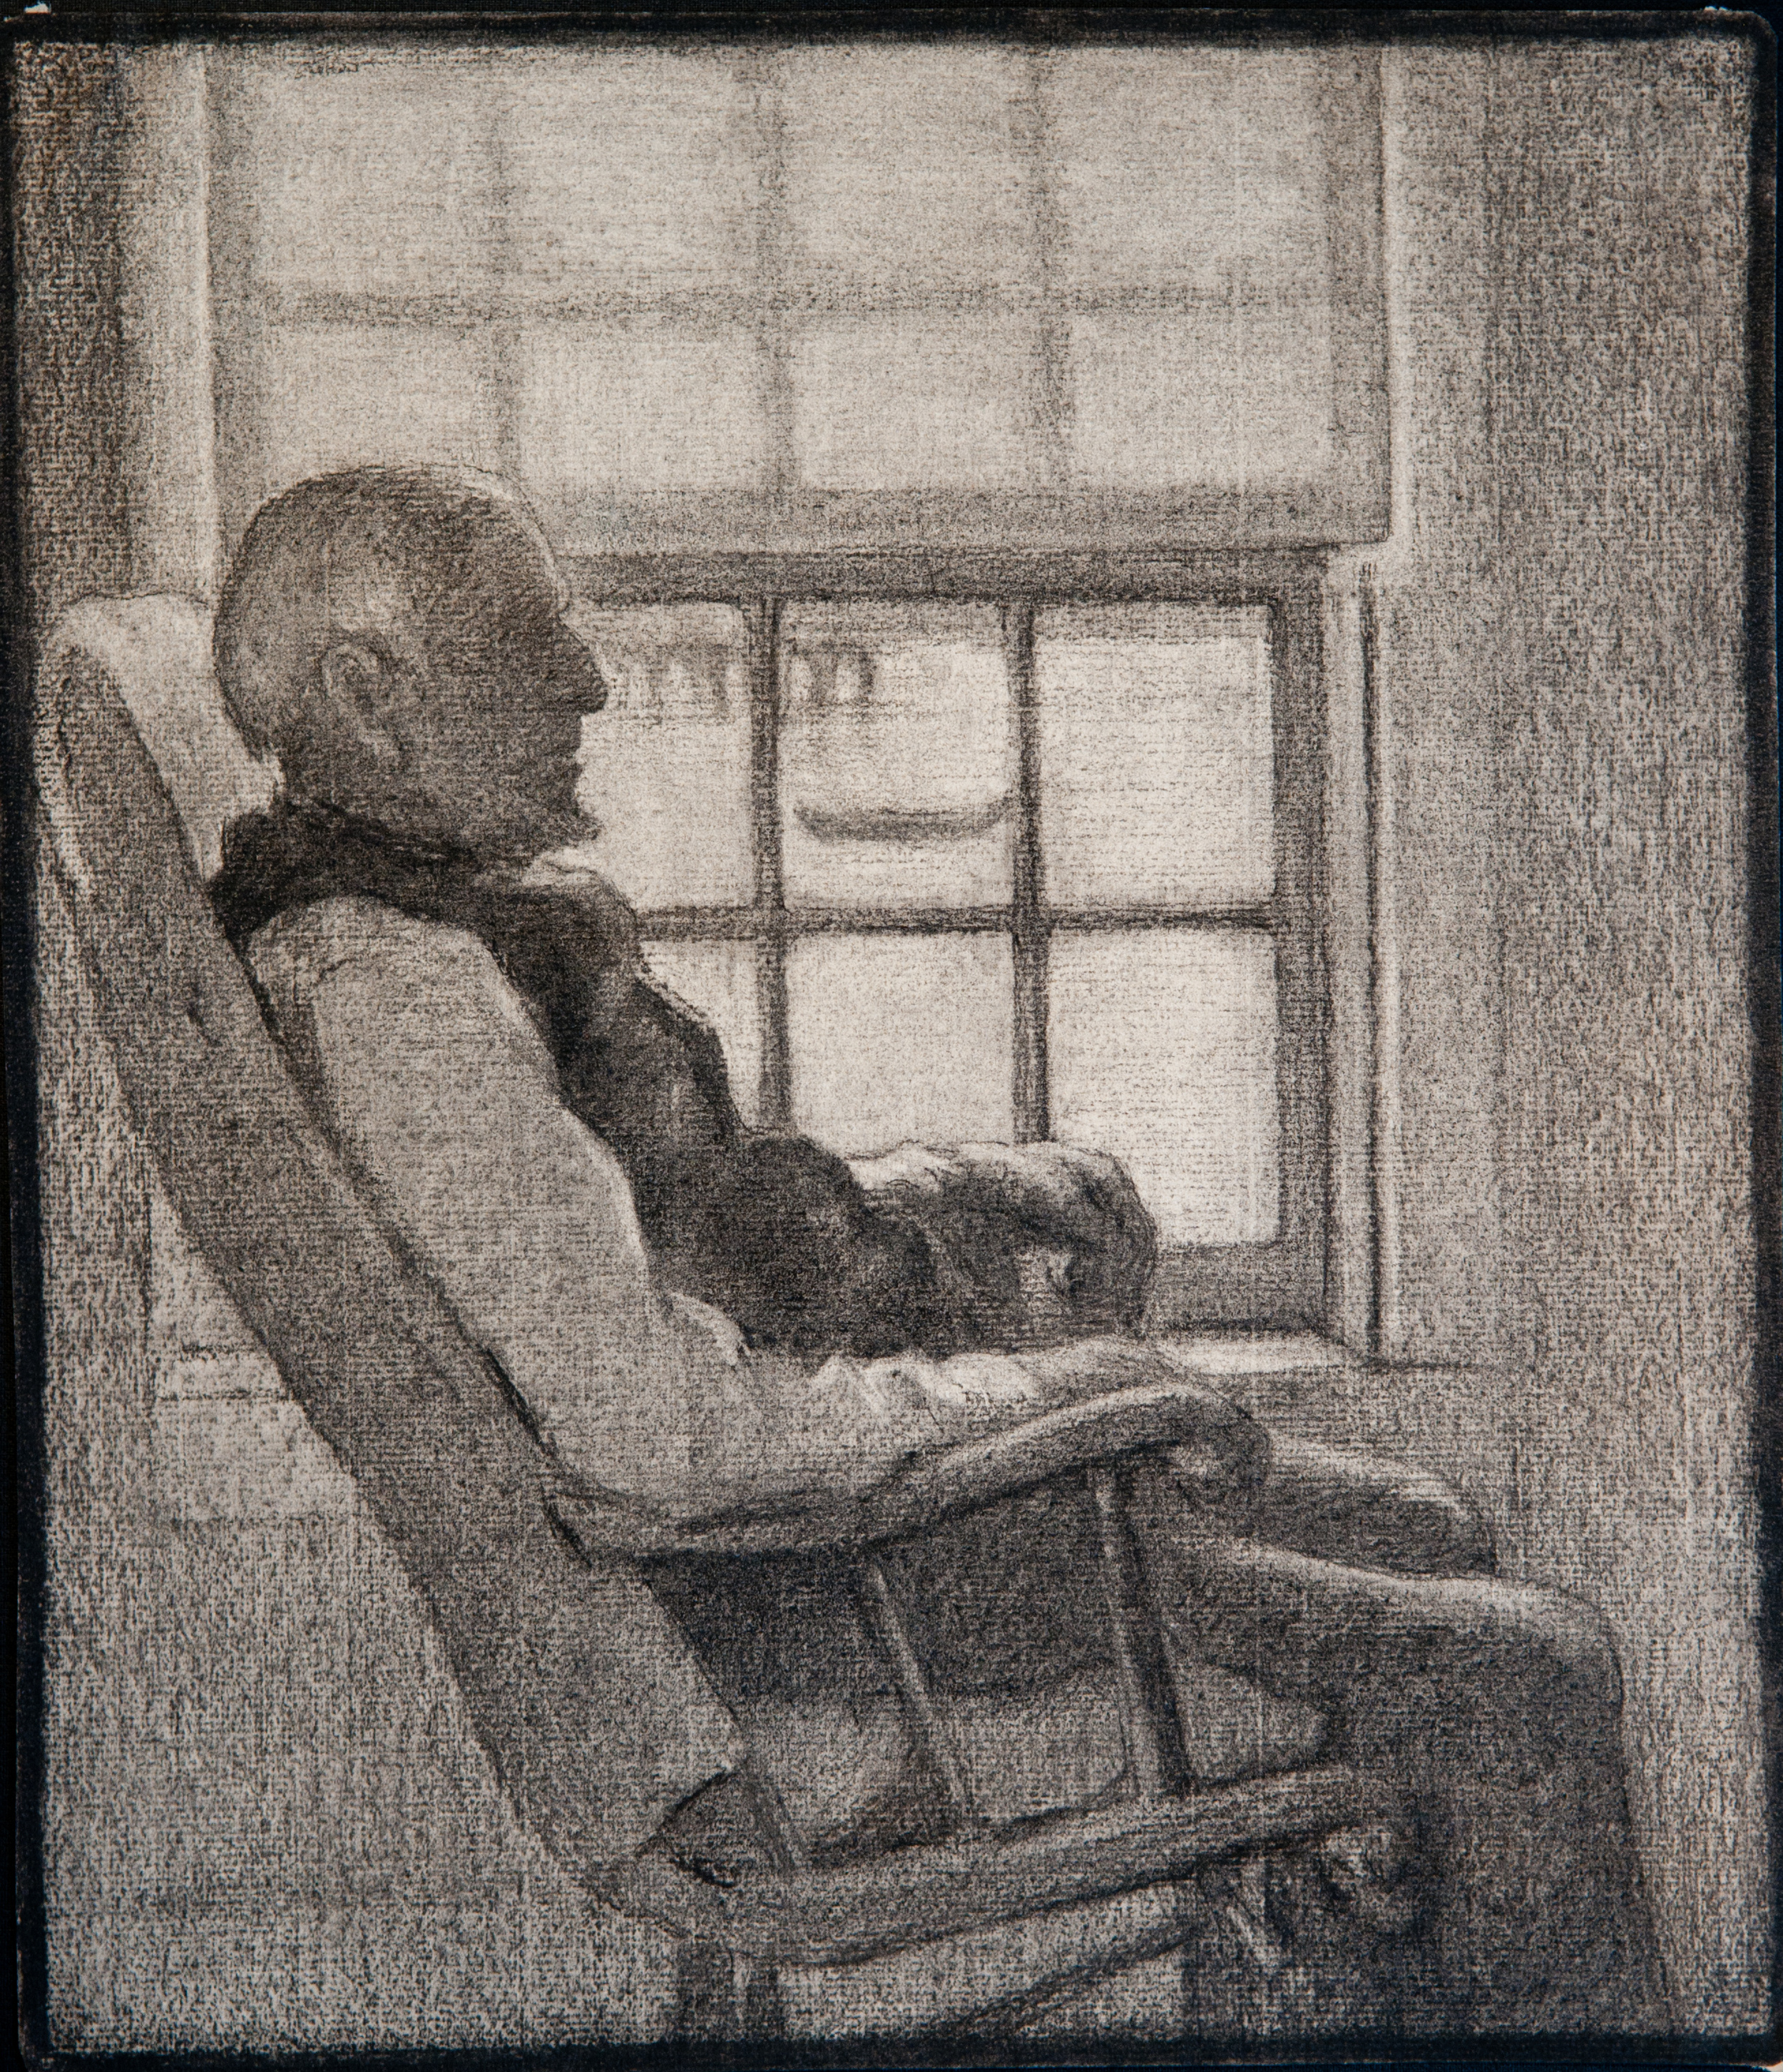 Old Man in Provincetown (Charcoal) by Edith Lake Wilkinson